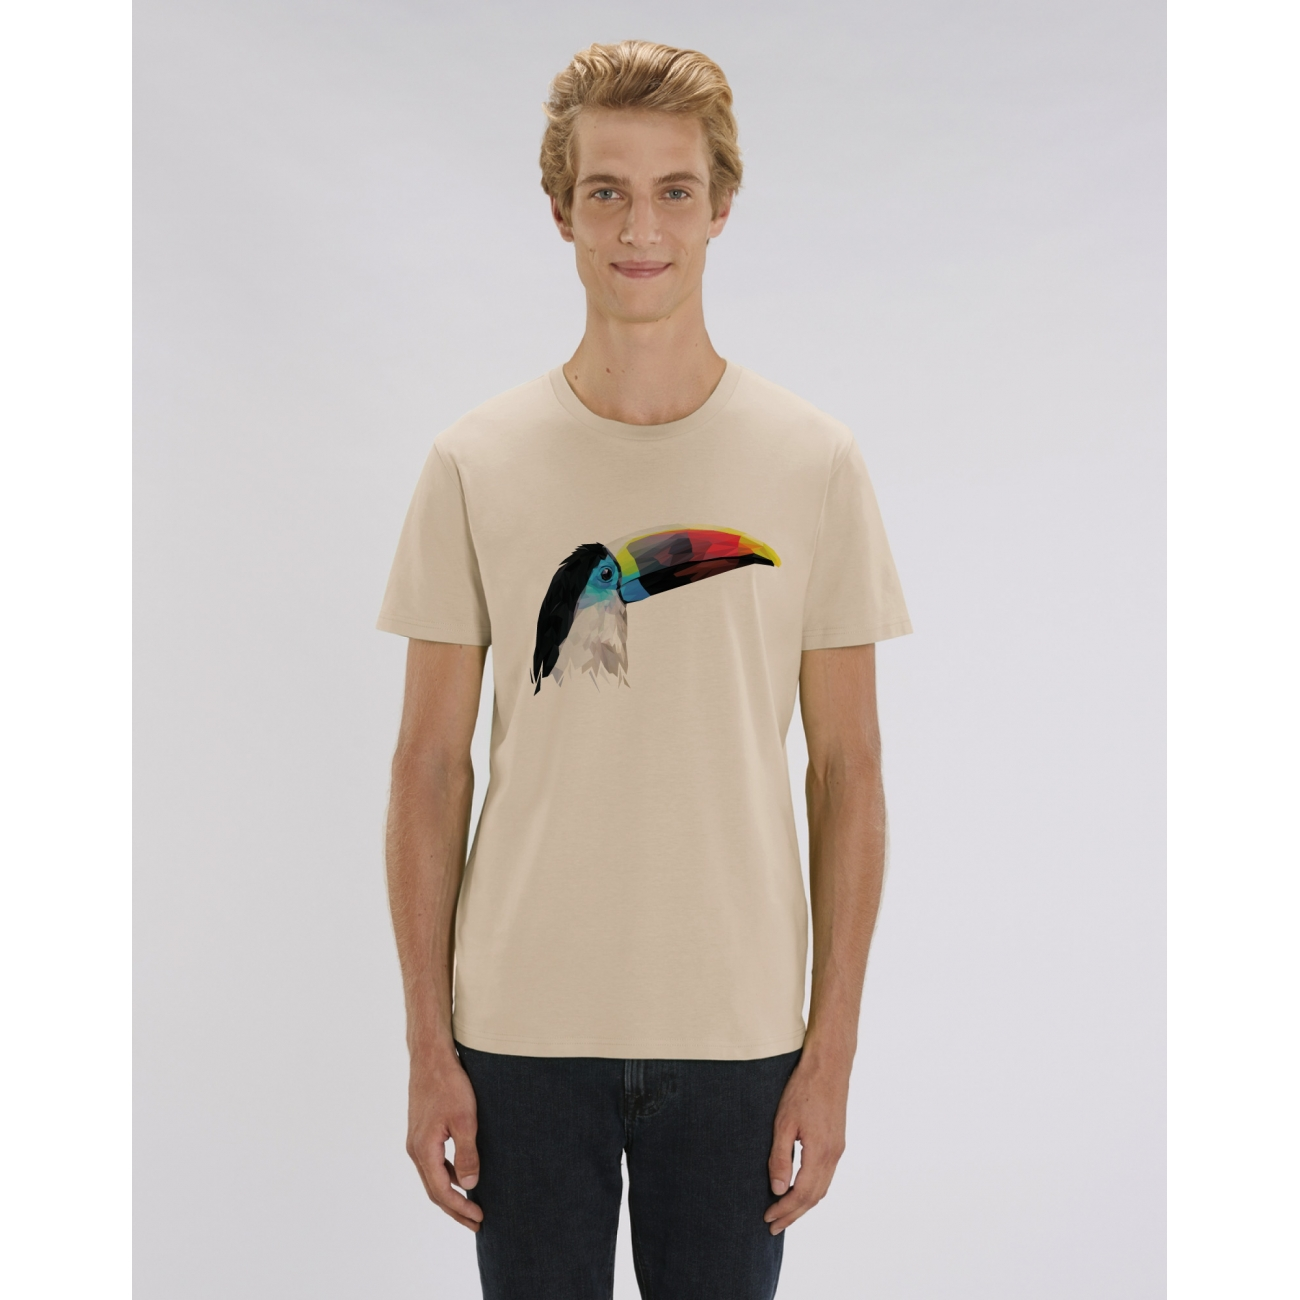 https://tee-shirt-bio.com/7845-thickbox_default/tee-shirt-couleur-sable-coton-bio-impression-toucan-creator.jpg